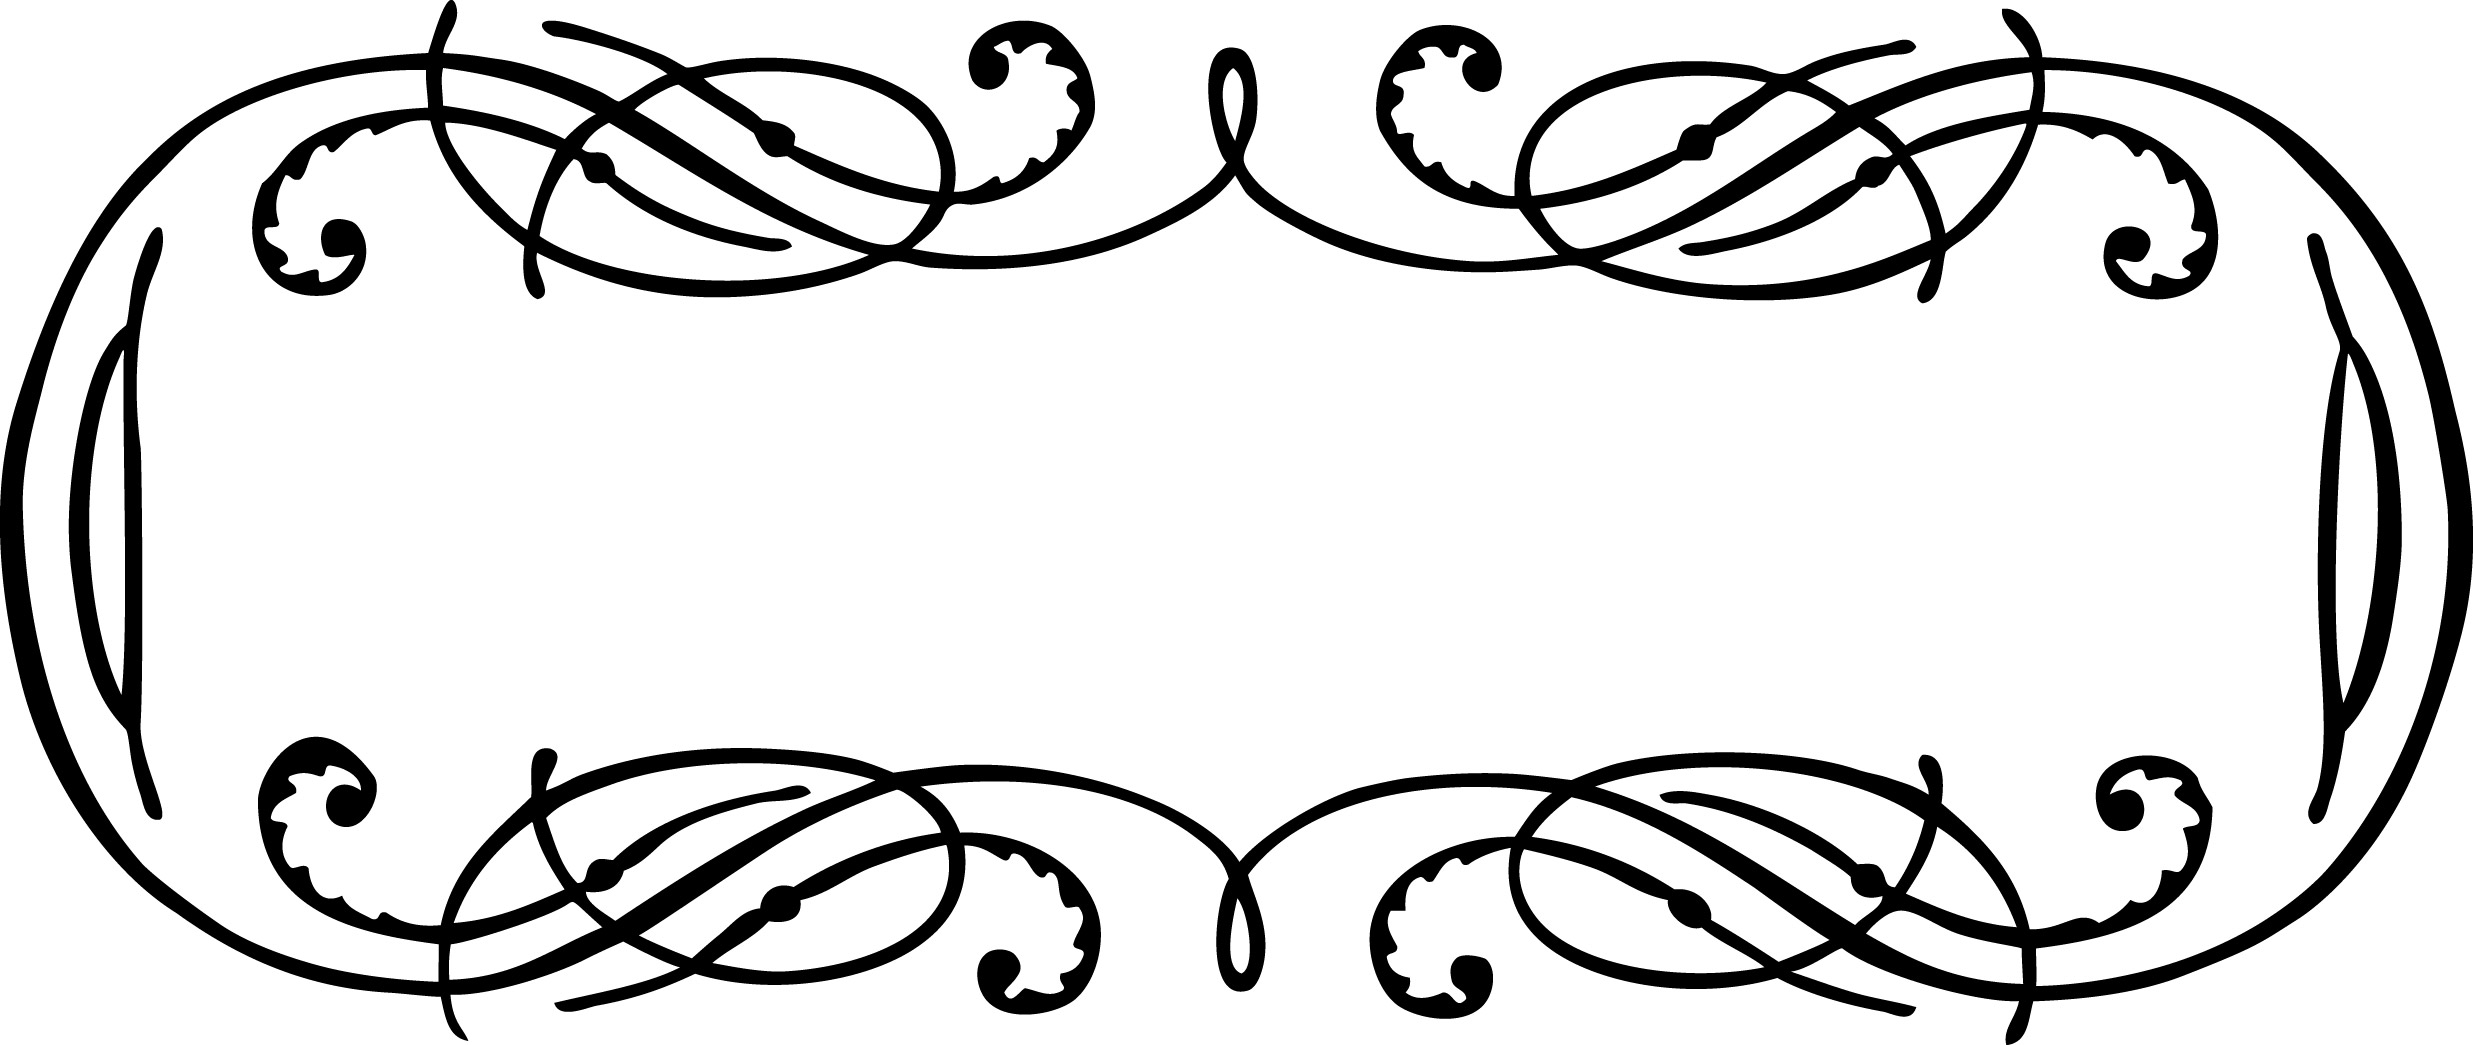 western clip art free borders - photo #41